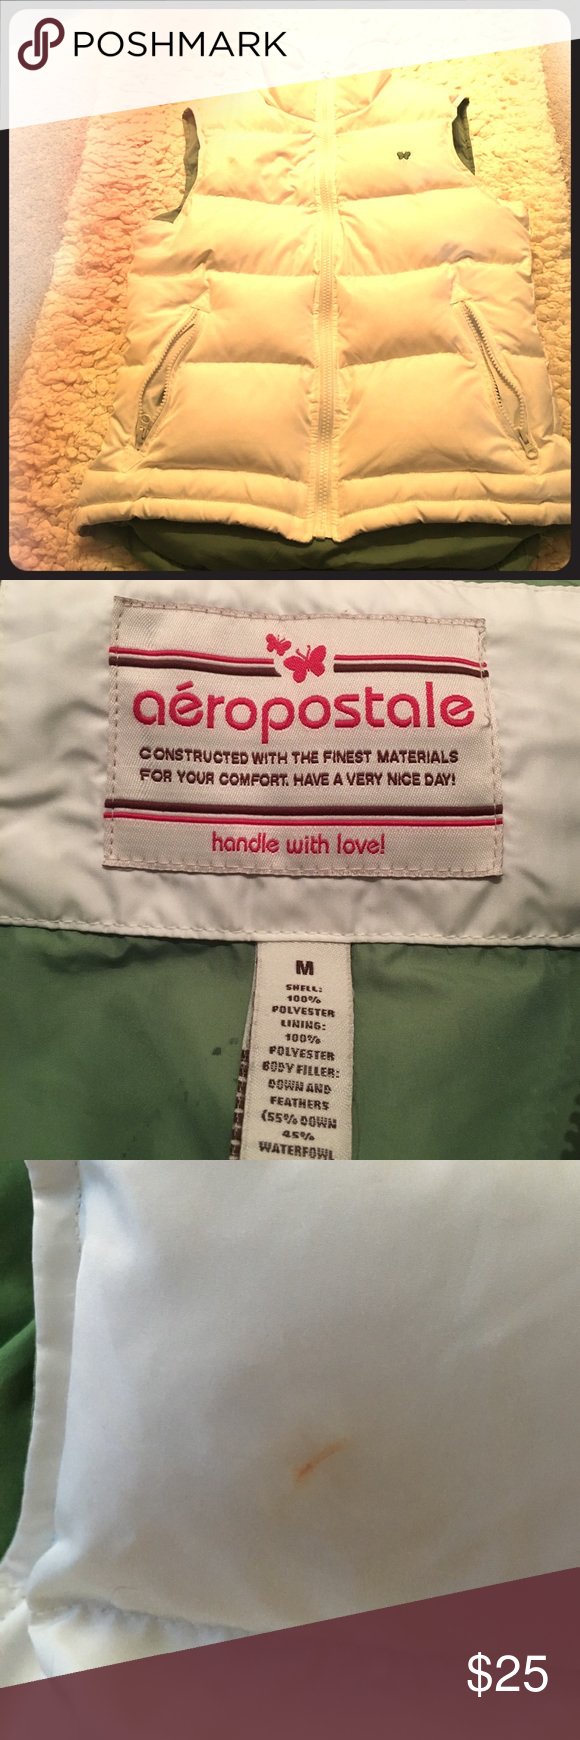 Aeropostale white and green high collared vest One tiny makeup stain (may come out) but otherwise great condition Aeropostale Jackets & Coats Vests